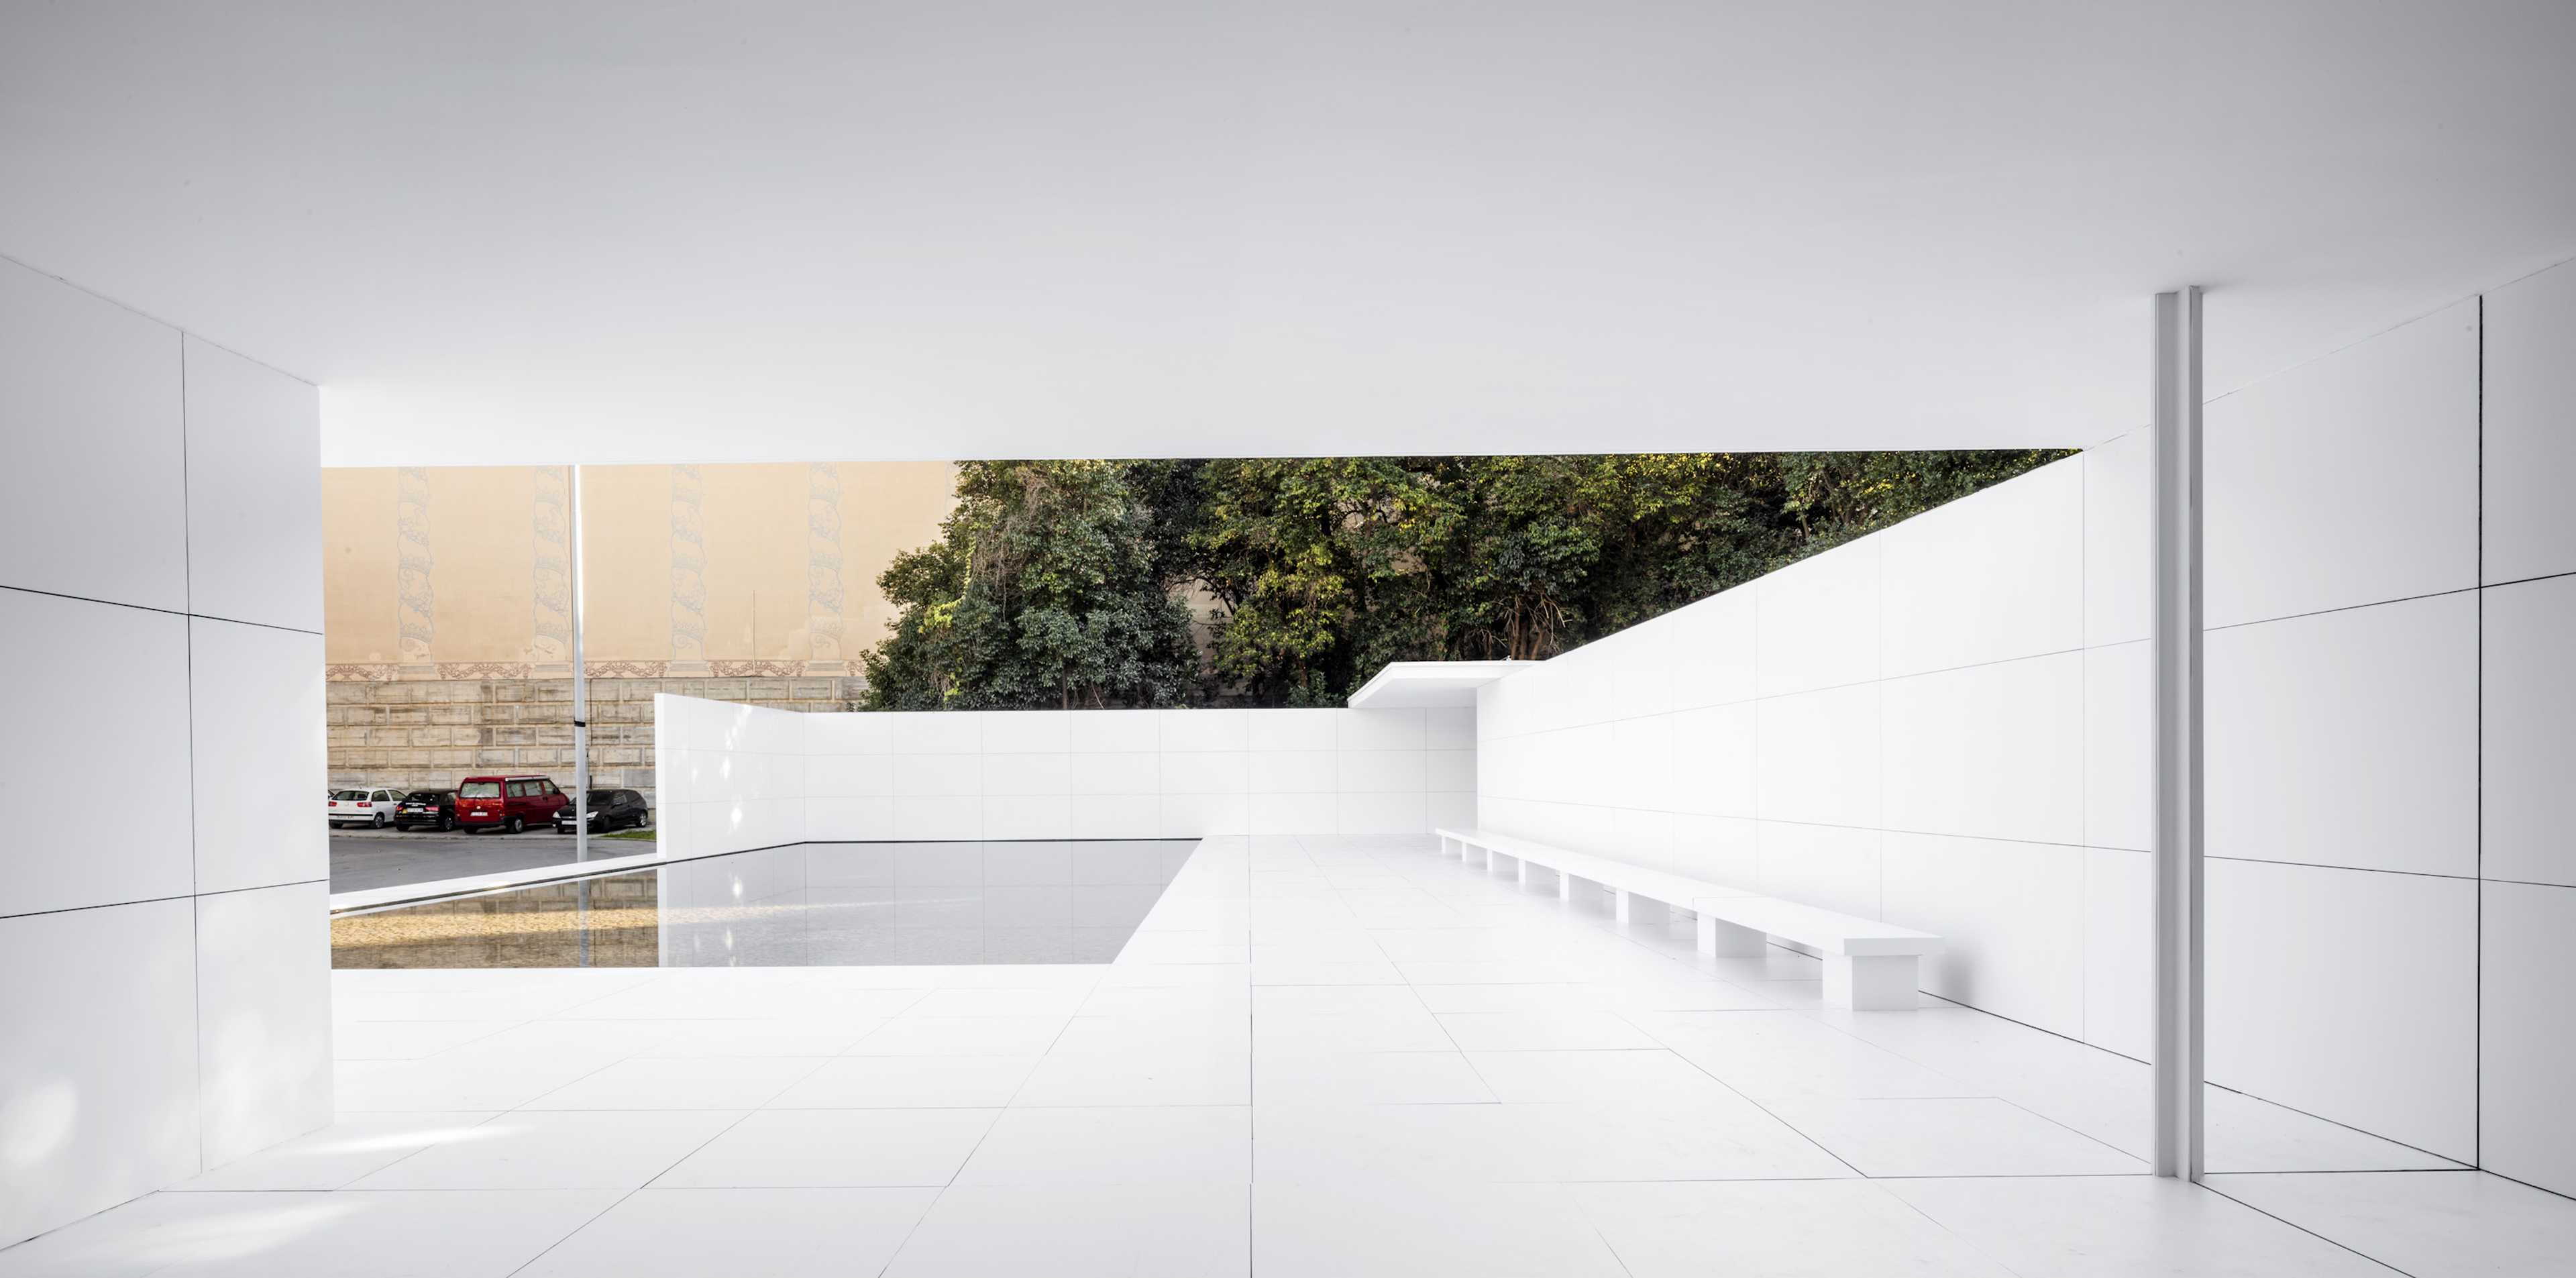 Mies Missing Materiality  - 62 01 40